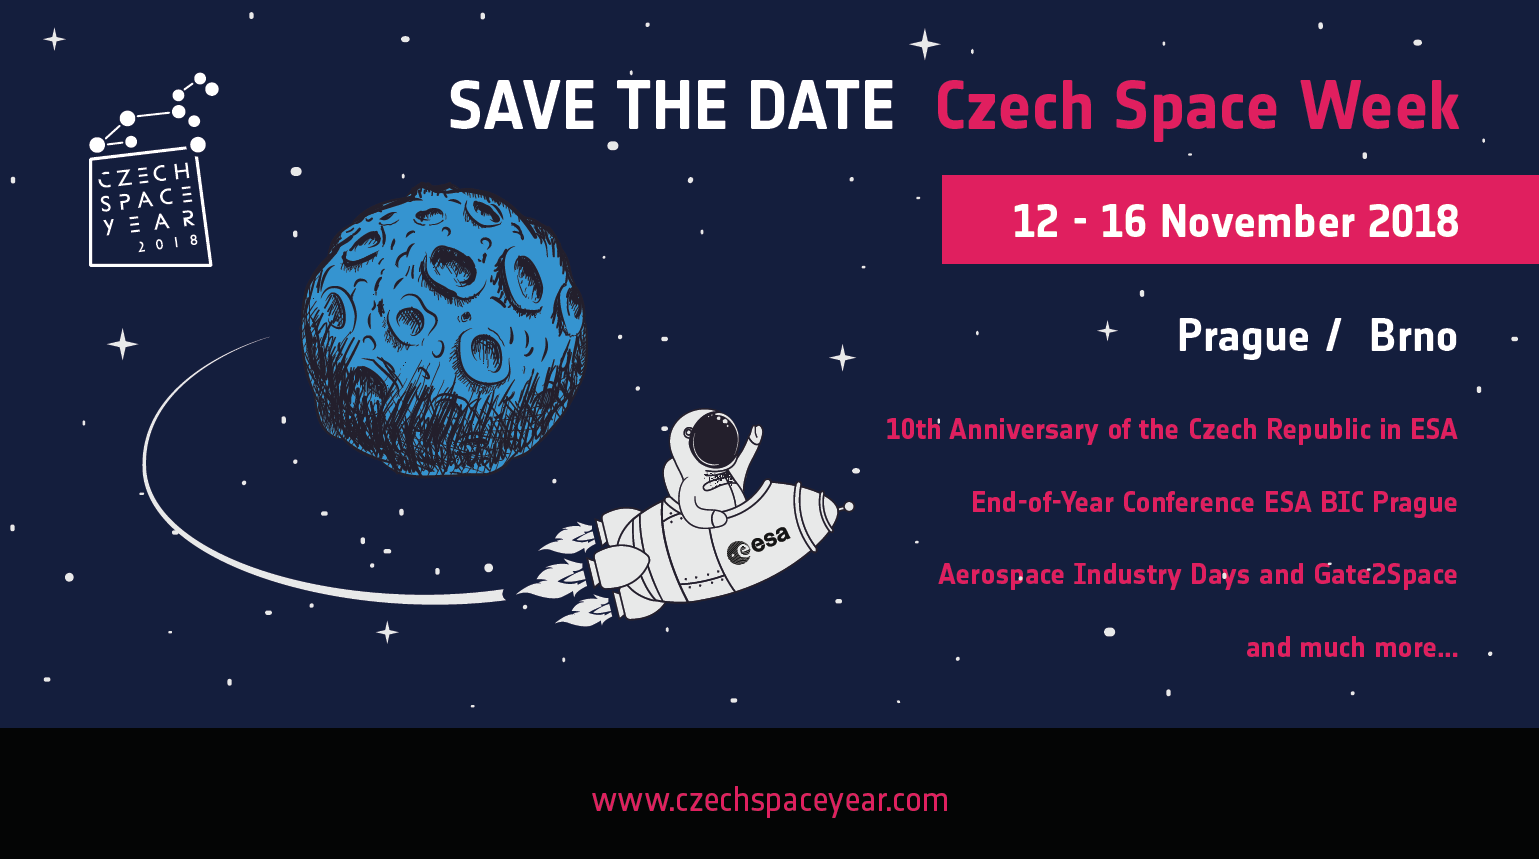 Save the date - Czech space week - Czech space year 2018